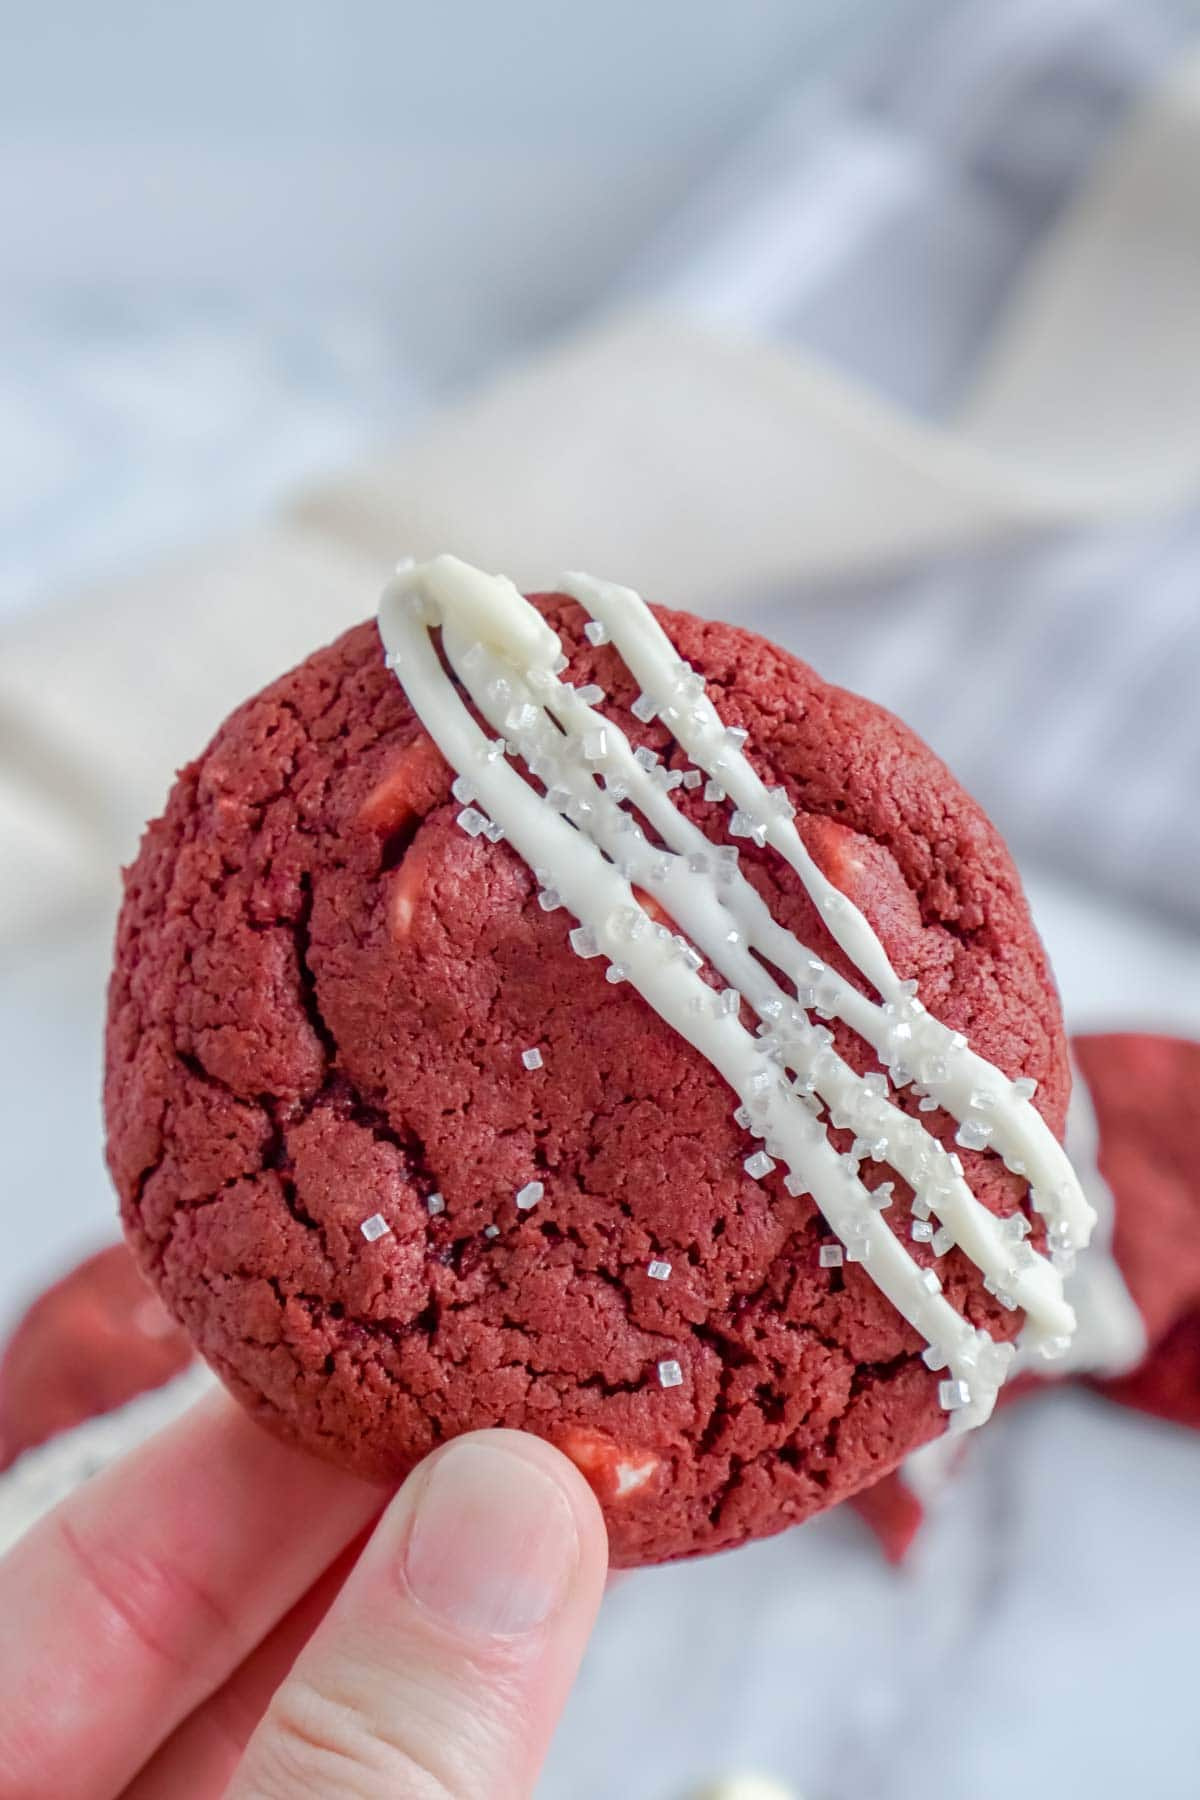 Woman's hand holding a red velvet cookie